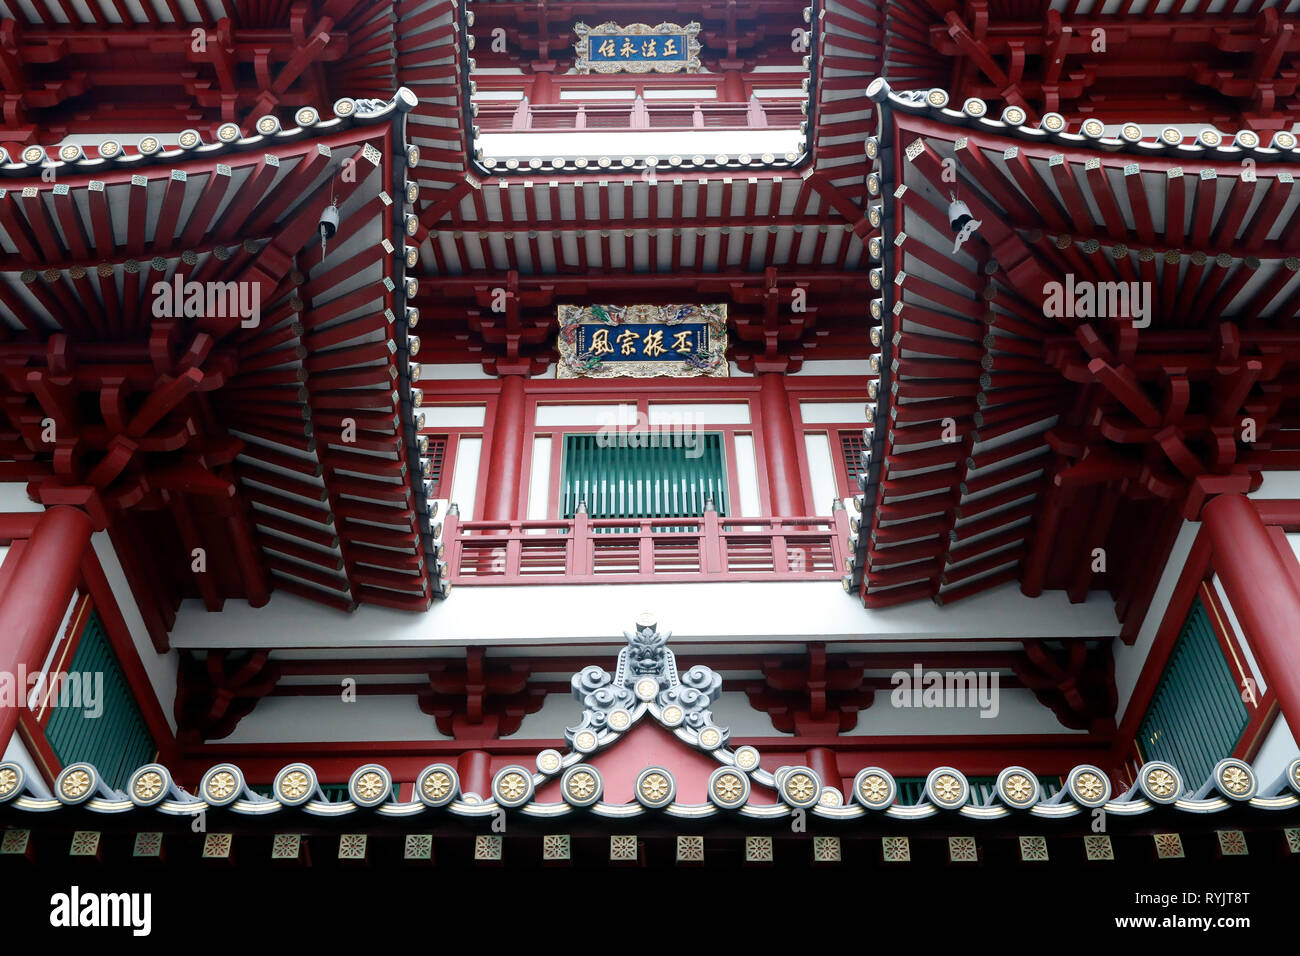 Buddha Tooth Relic Temple in Chinatown. Singapore. - Stock Image